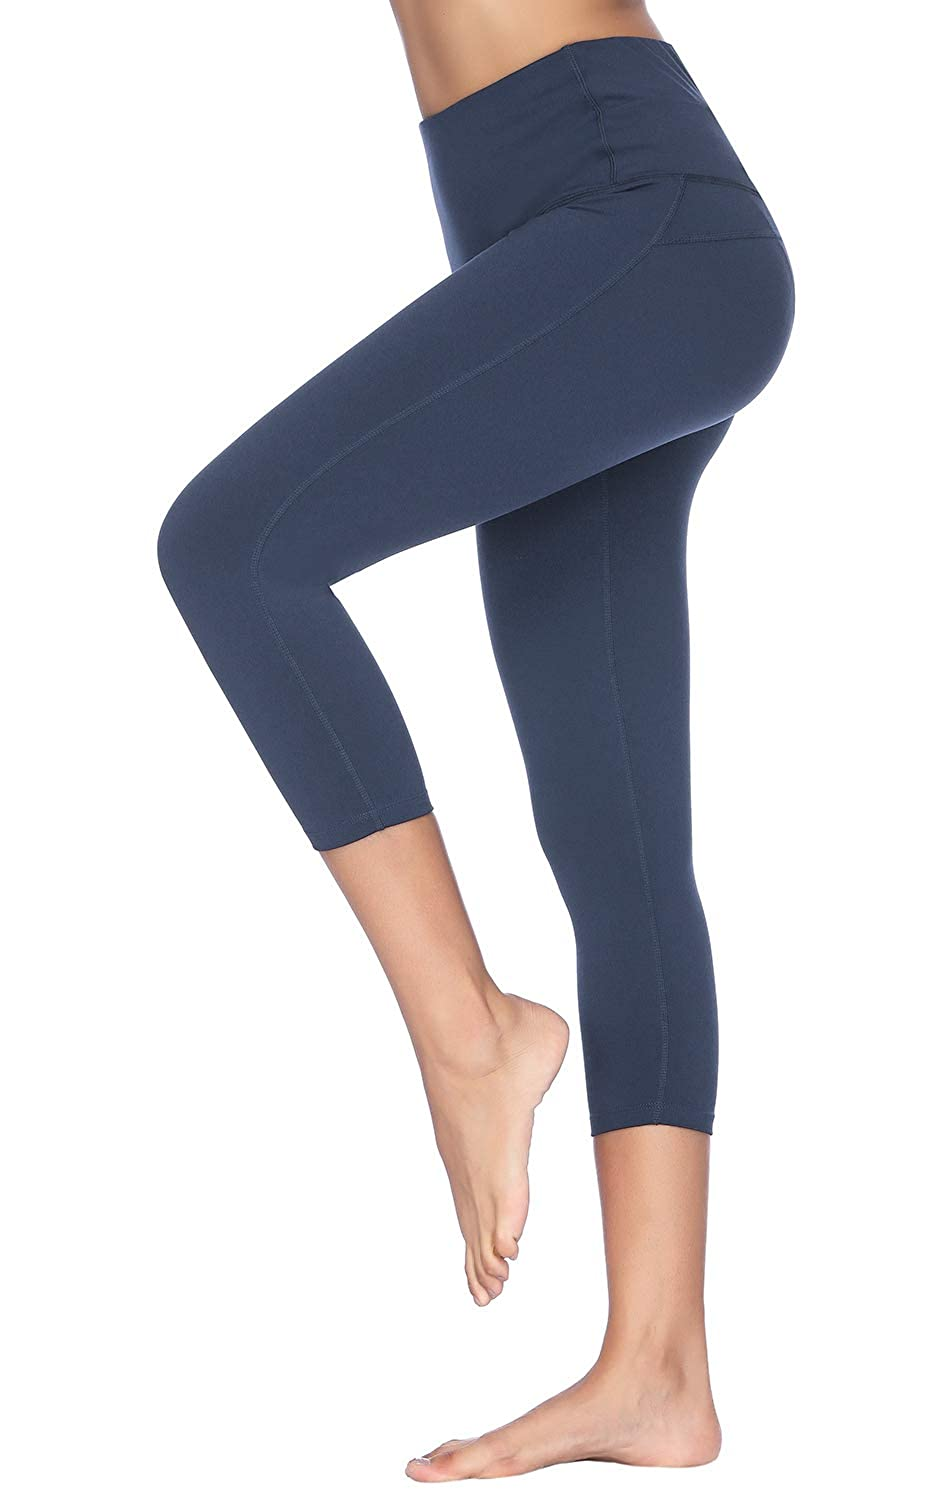 2e6ad396ddb Amazon.com  X-Fit Sports Women High Waisted Yoga Pants - Running Workout  Legging with Hidden Pocket